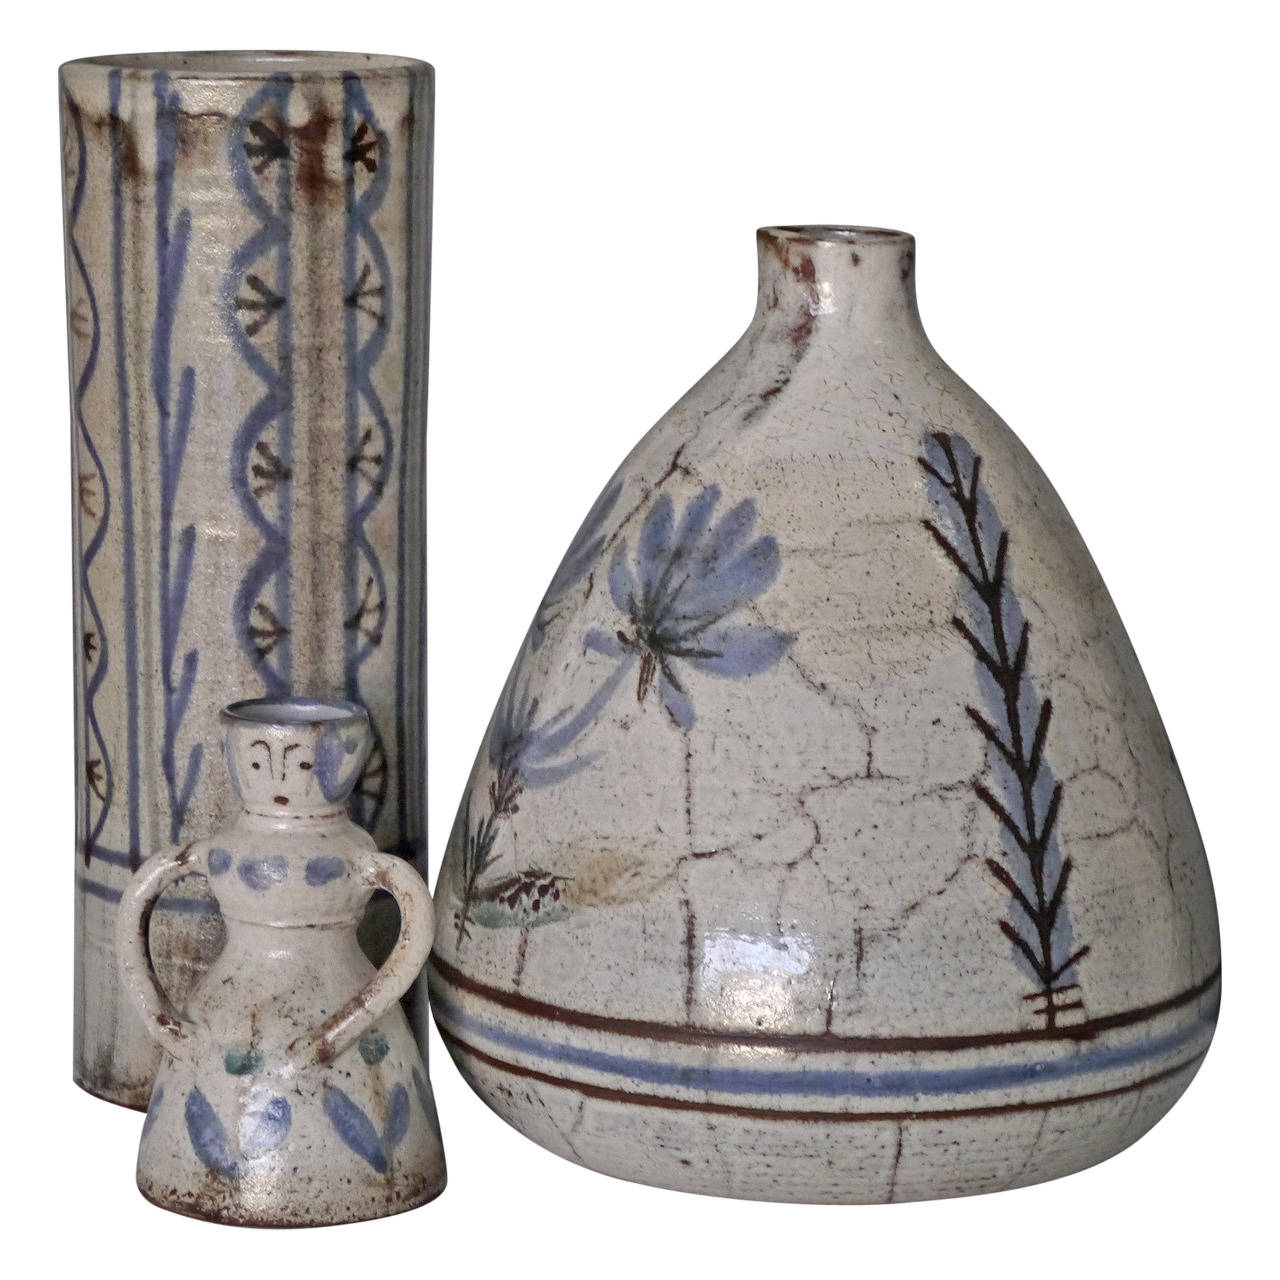 Three Stoneware Shapes by Gustave Raynaud and Jean Derval, Vallauris, circa 1950